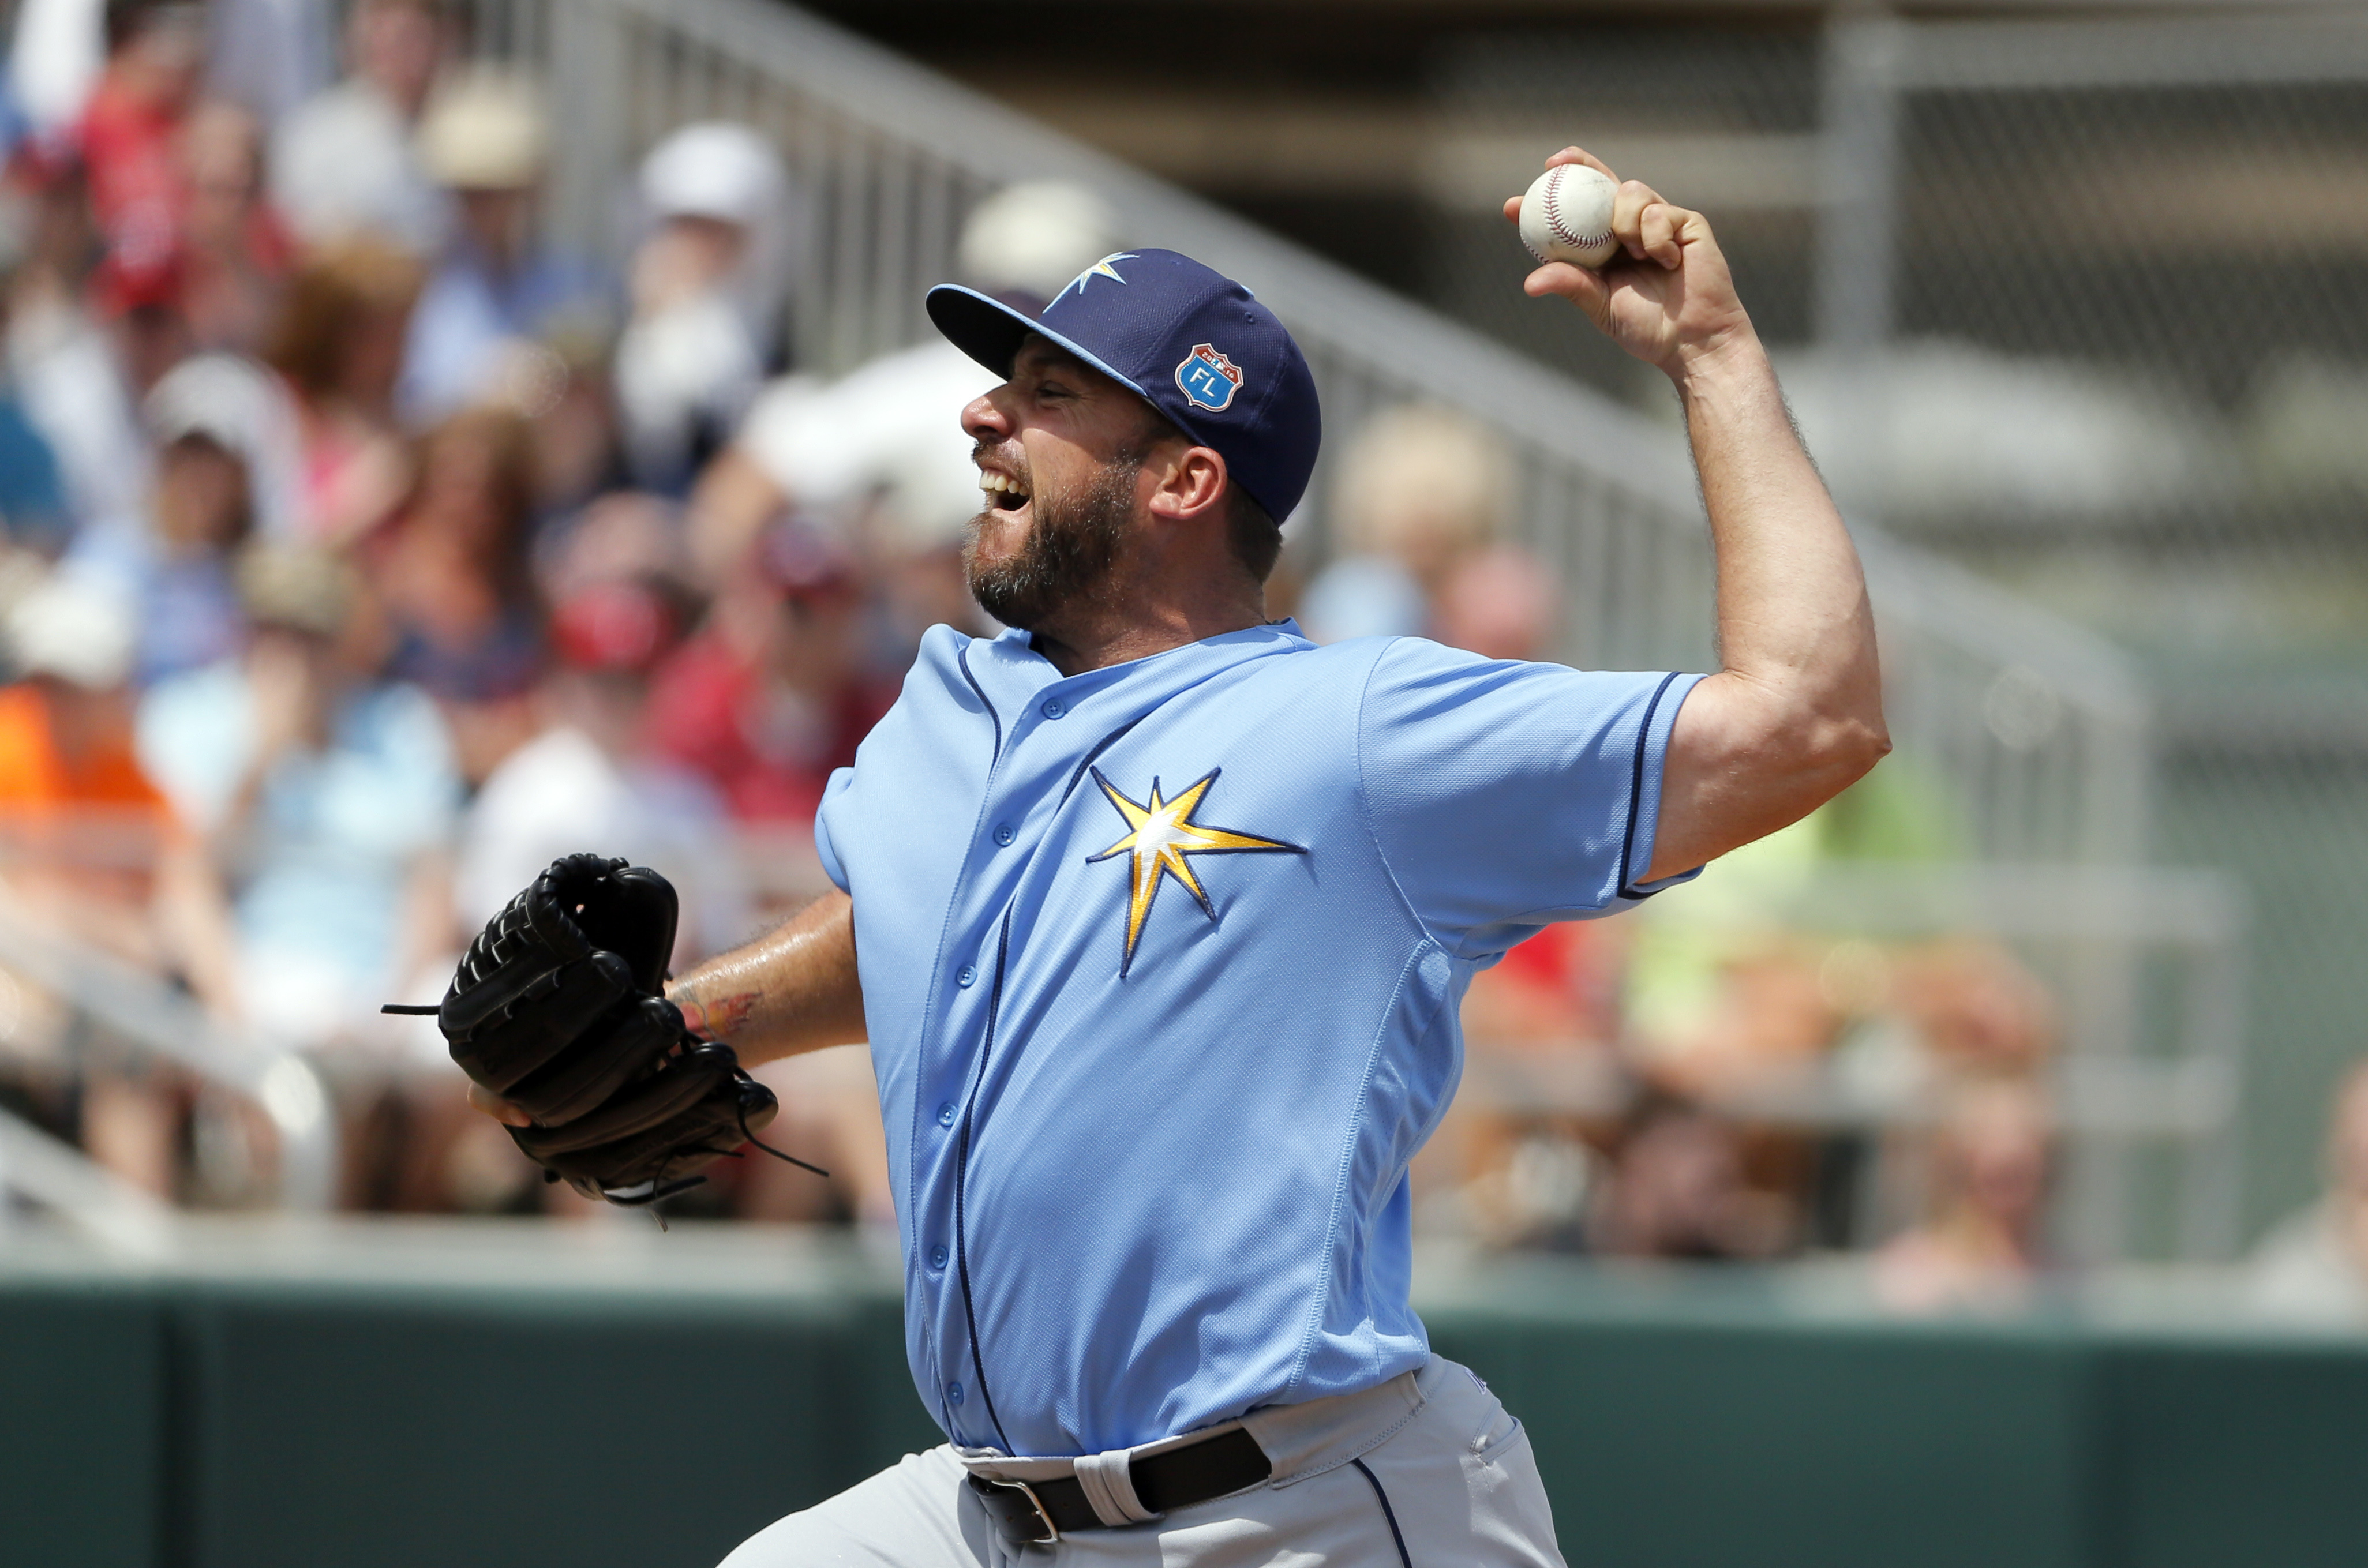 Tampa Bay Rays relief pitcher Dana Eveland works against the Minnesota Twins in the first inning of a spring training baseball game, Wednesday, March 23, 2016, in Fort Myers, Fla. (AP Photo/Tony Gutierrez)